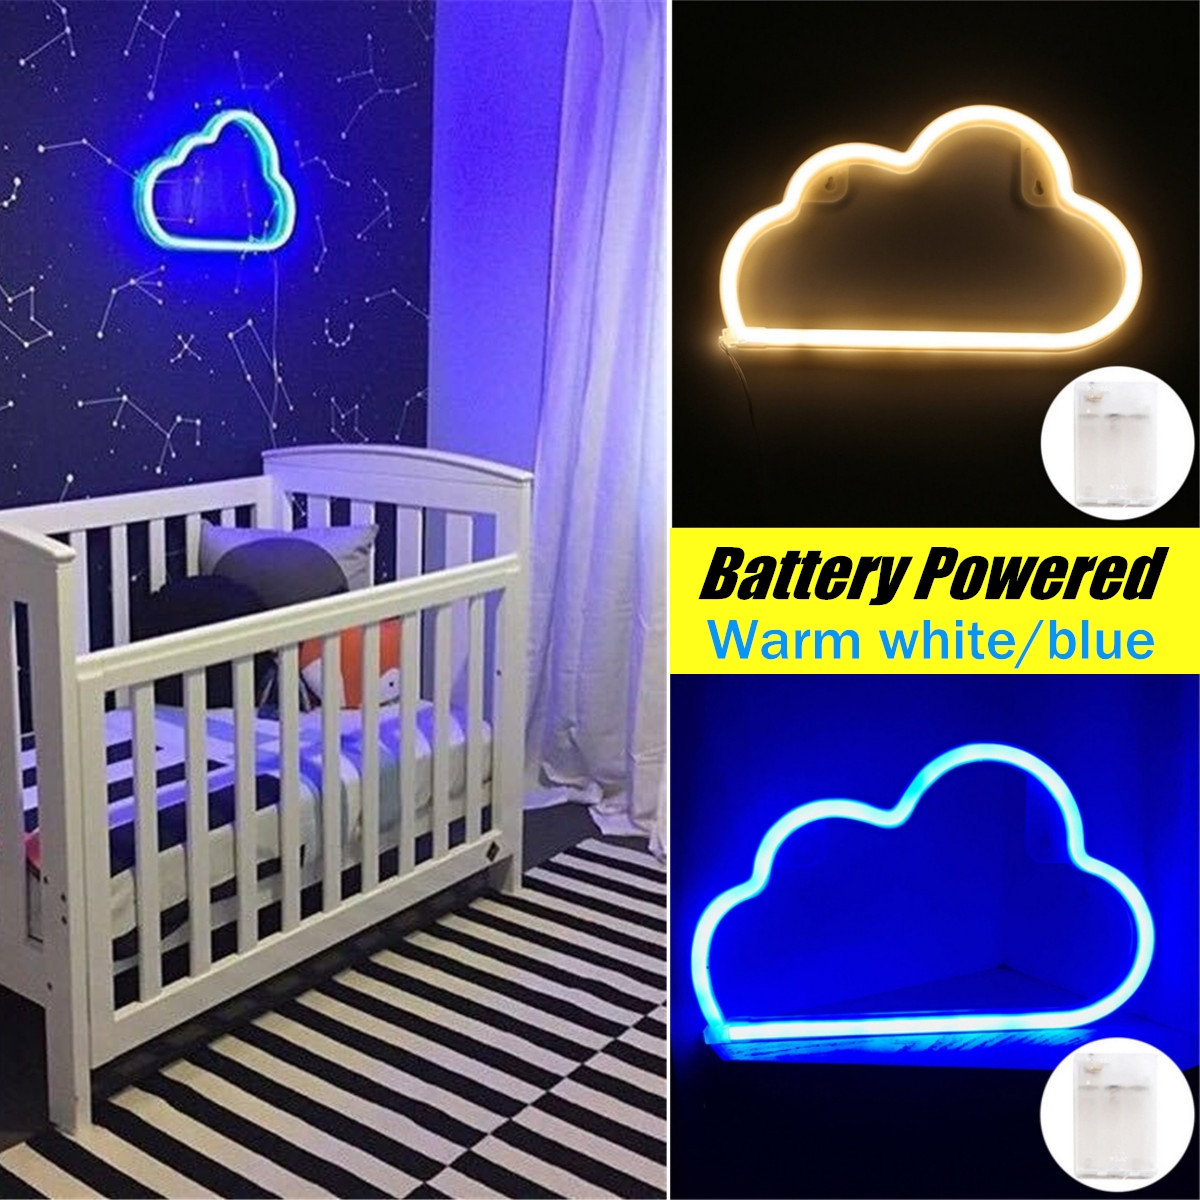 Plastic LED Neon Sign Night Light Cloud Design Wall Lamp Bedroom Bar Ornaments Christmas Party Decoration Holiday Lighting GiftsPlastic LED Neon Sign Night Light Cloud Design Wall Lamp Bedroom Bar Ornaments Christmas Party Decoration Holiday Lighting Gifts